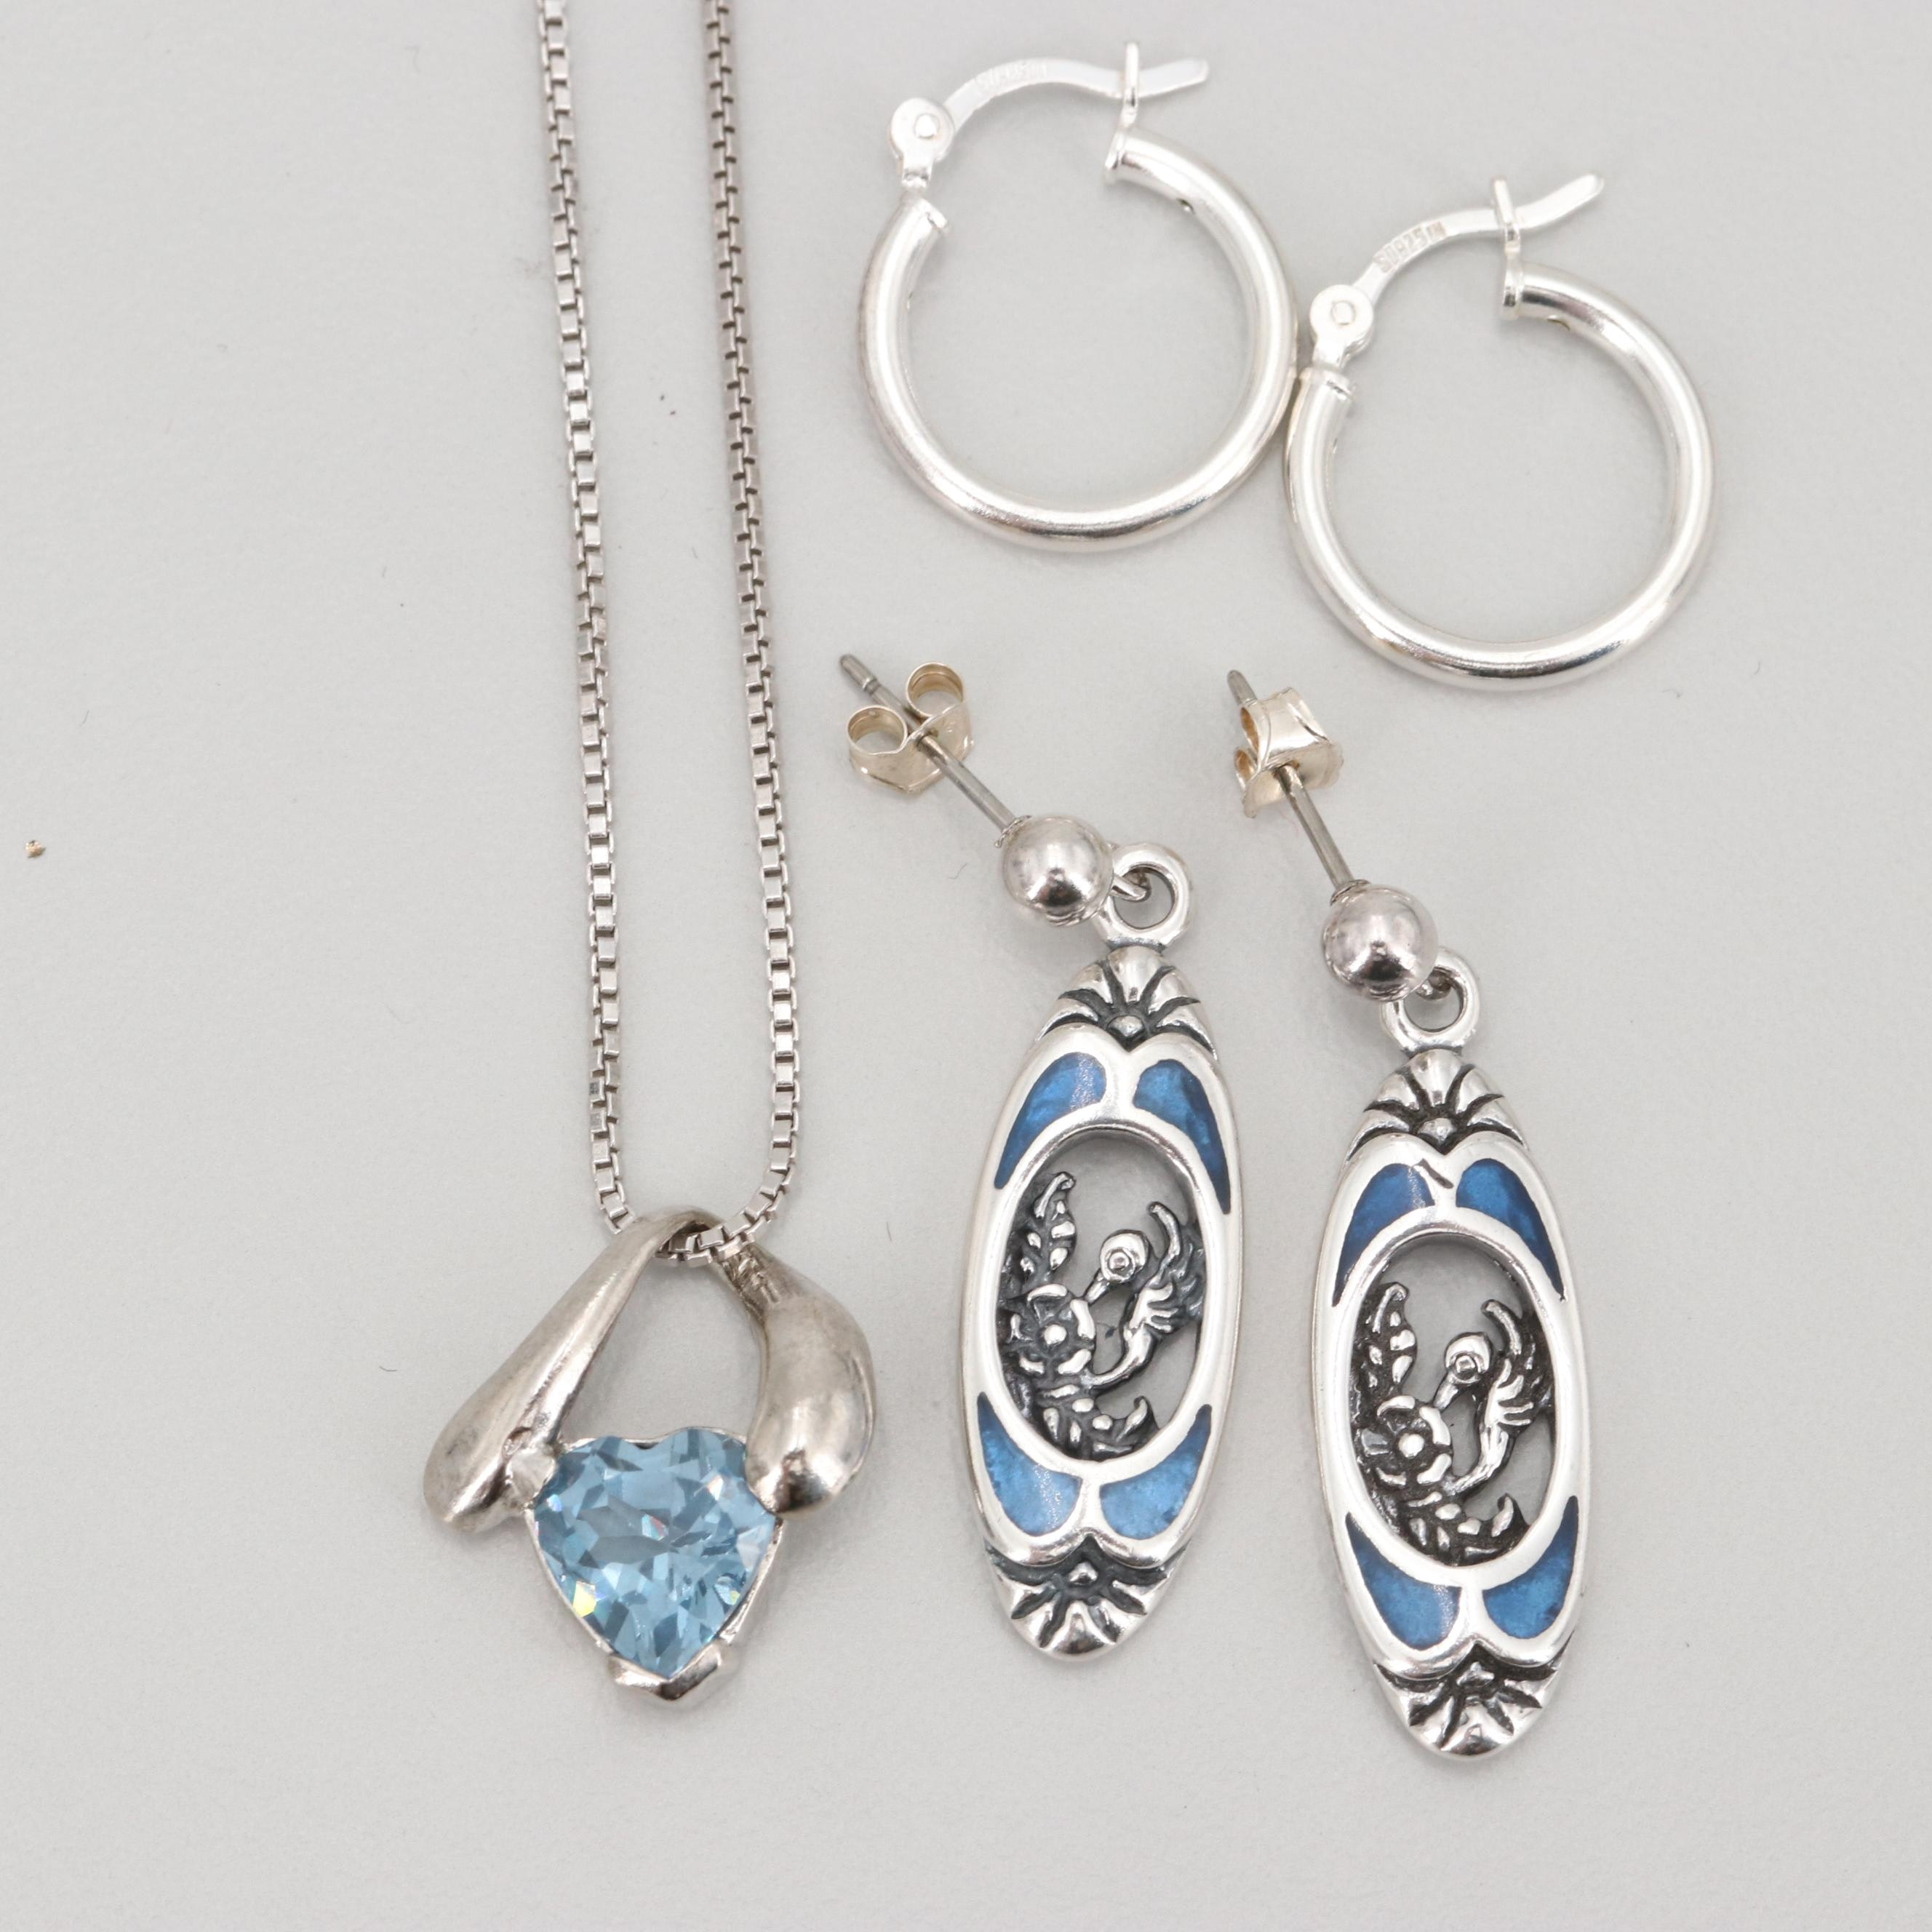 Sterling Silver Earrings and Blue Topaz Pendant Necklace